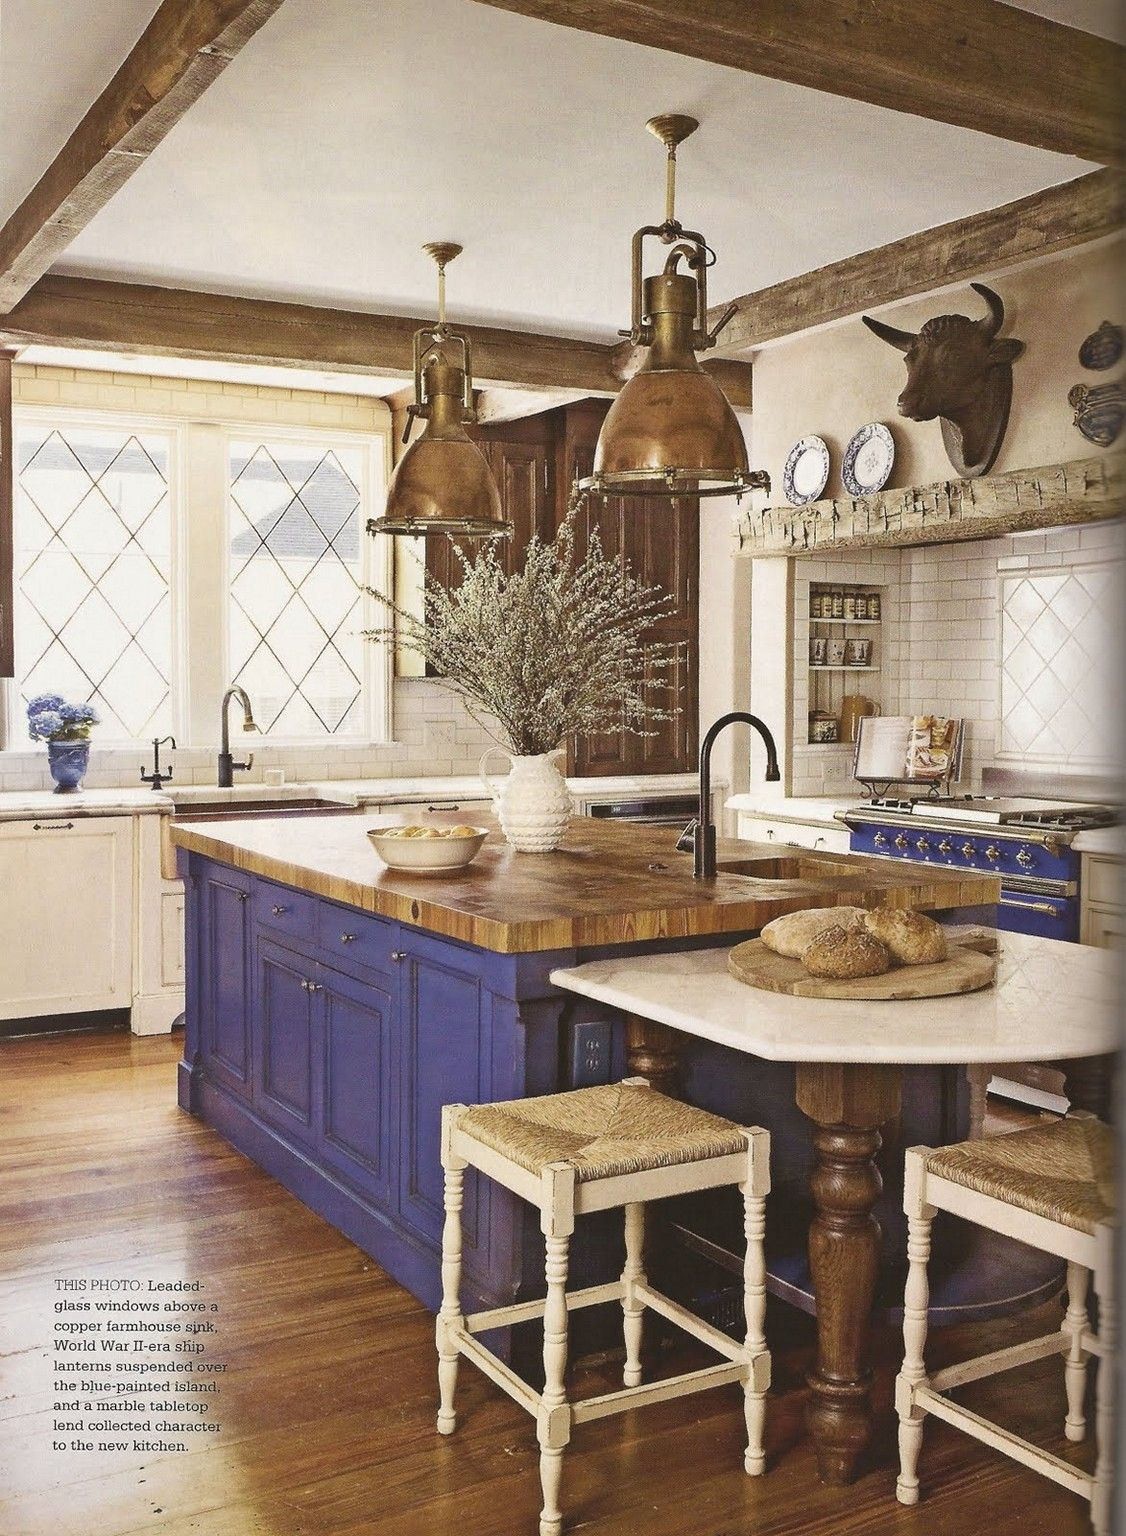 They add even more character to this rustic, Spanish style kitchen ...